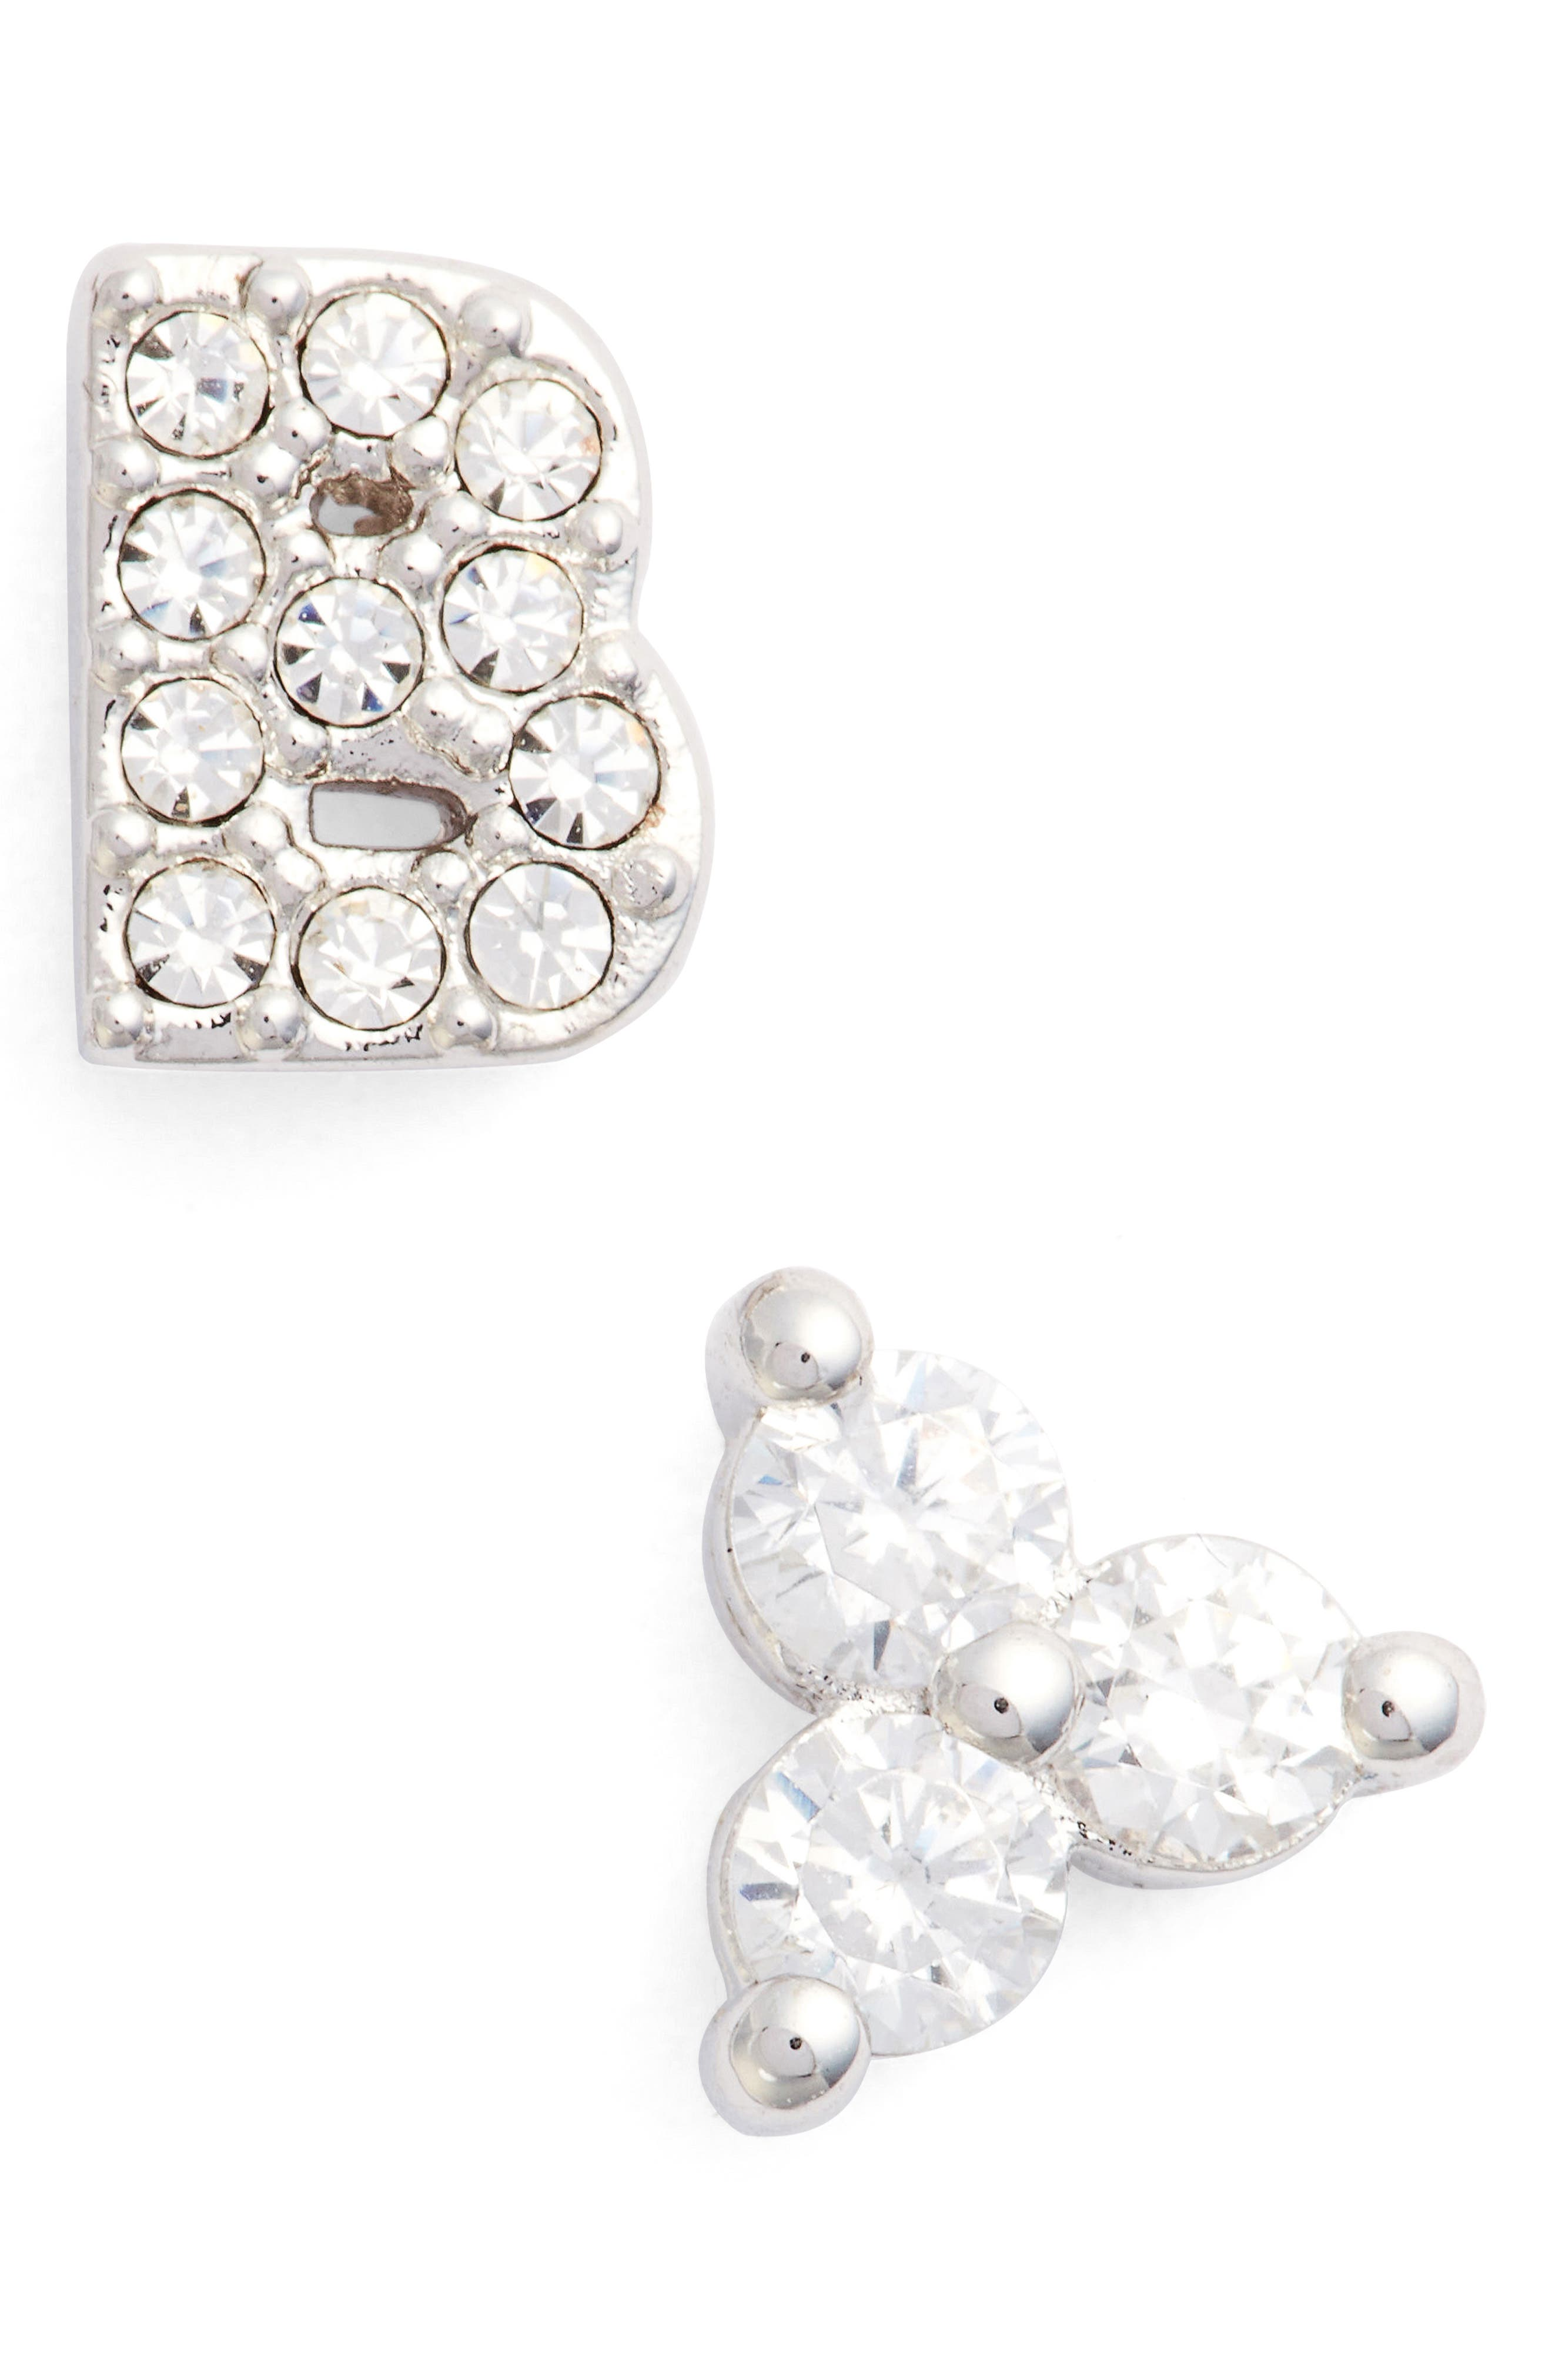 Main Image - Nadri Initial Mismatched Stud Earrings